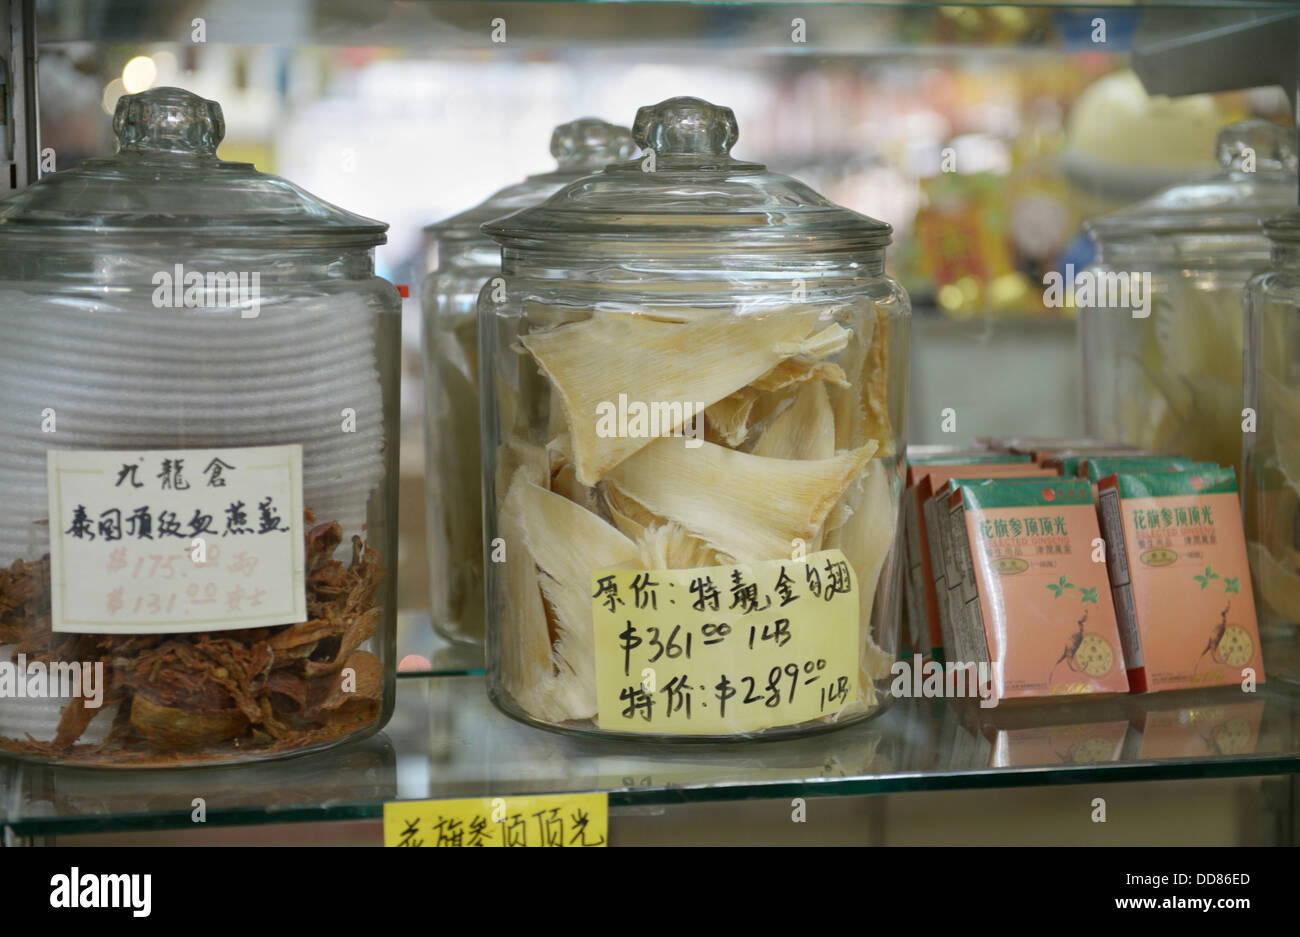 Dried shark fins for sale in Chinatown, NY.  Used to make shark's fin soup, considered a delicacy for special - Stock Image